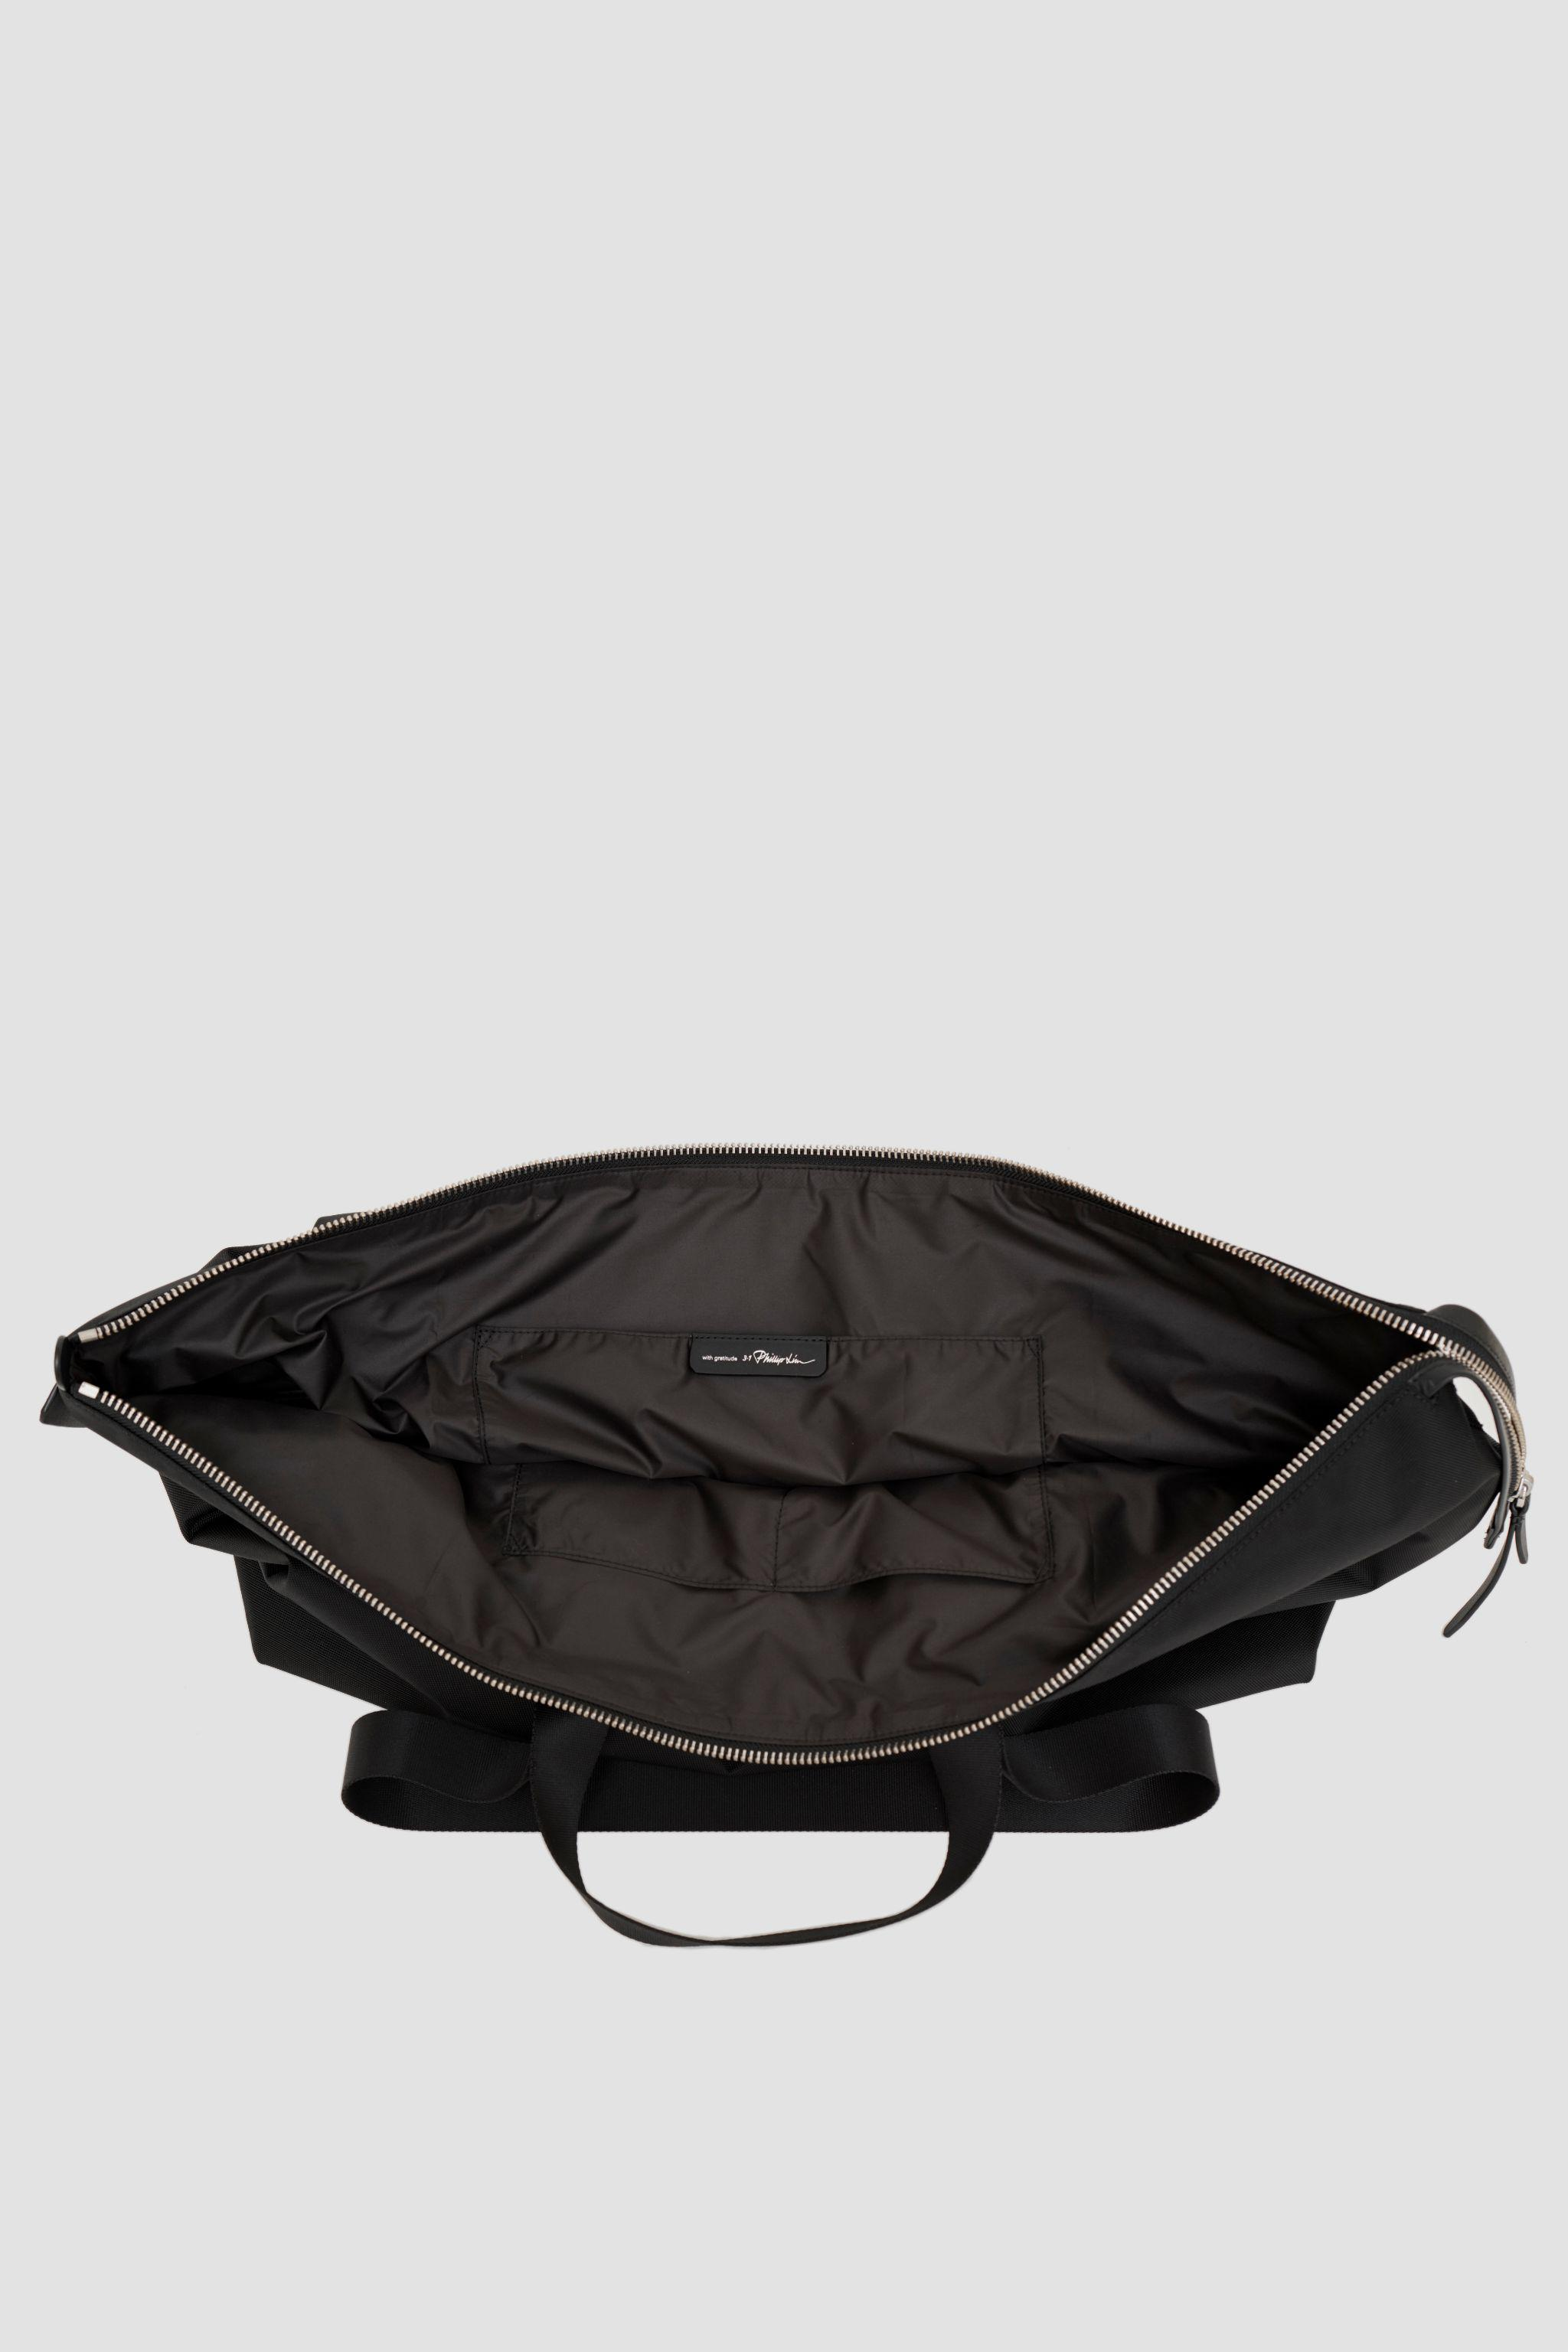 The Deconstructed Duffle Bag 2